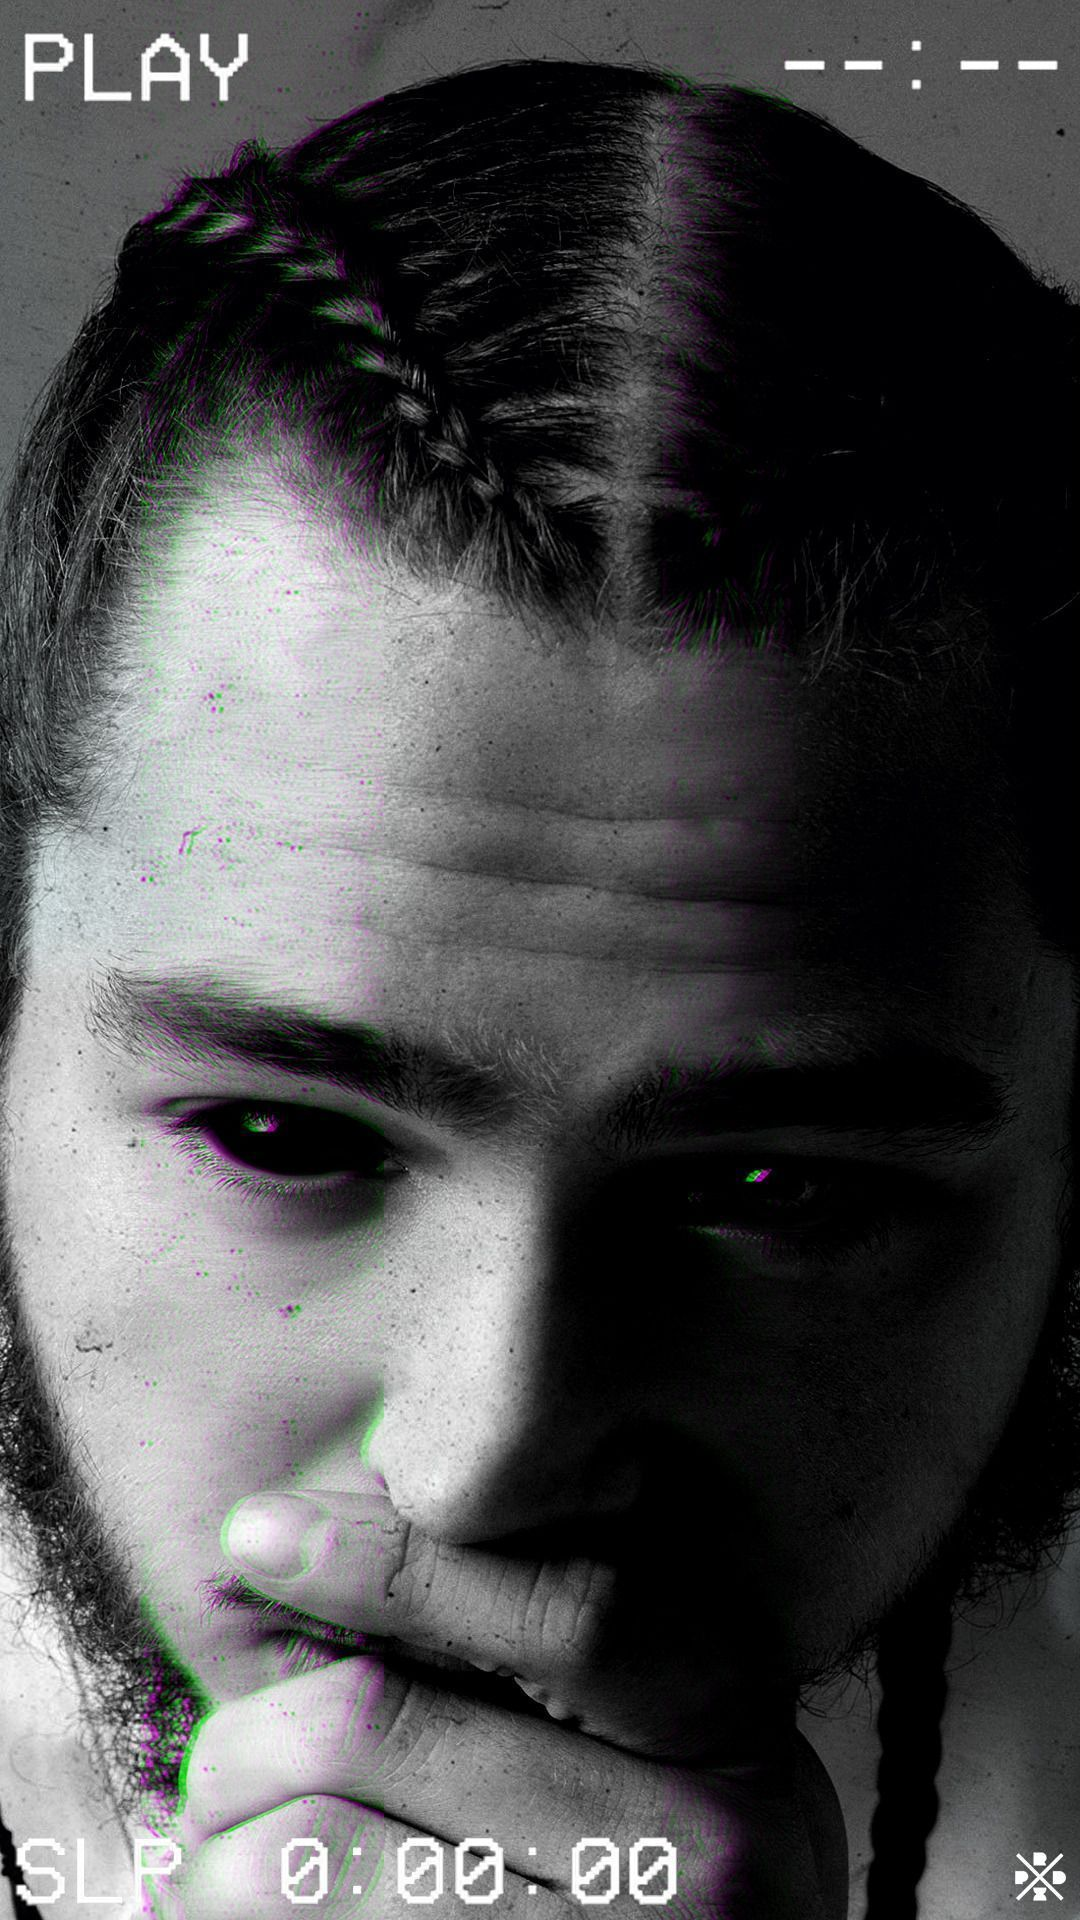 POST MALONE — paradoxsa: Post Malone wallpapers for iPhone and... #postmalonewallpaper POST MALONE — paradoxsa: Post Malone wallpapers for iPhone and... #postmalonewallpaper POST MALONE — paradoxsa: Post Malone wallpapers for iPhone and... #postmalonewallpaper POST MALONE — paradoxsa: Post Malone wallpapers for iPhone and... #postmalonewallpaper POST MALONE — paradoxsa: Post Malone wallpapers for iPhone and... #postmalonewallpaper POST MALONE — paradoxsa: Post Malone wallpapers for i #postmalone